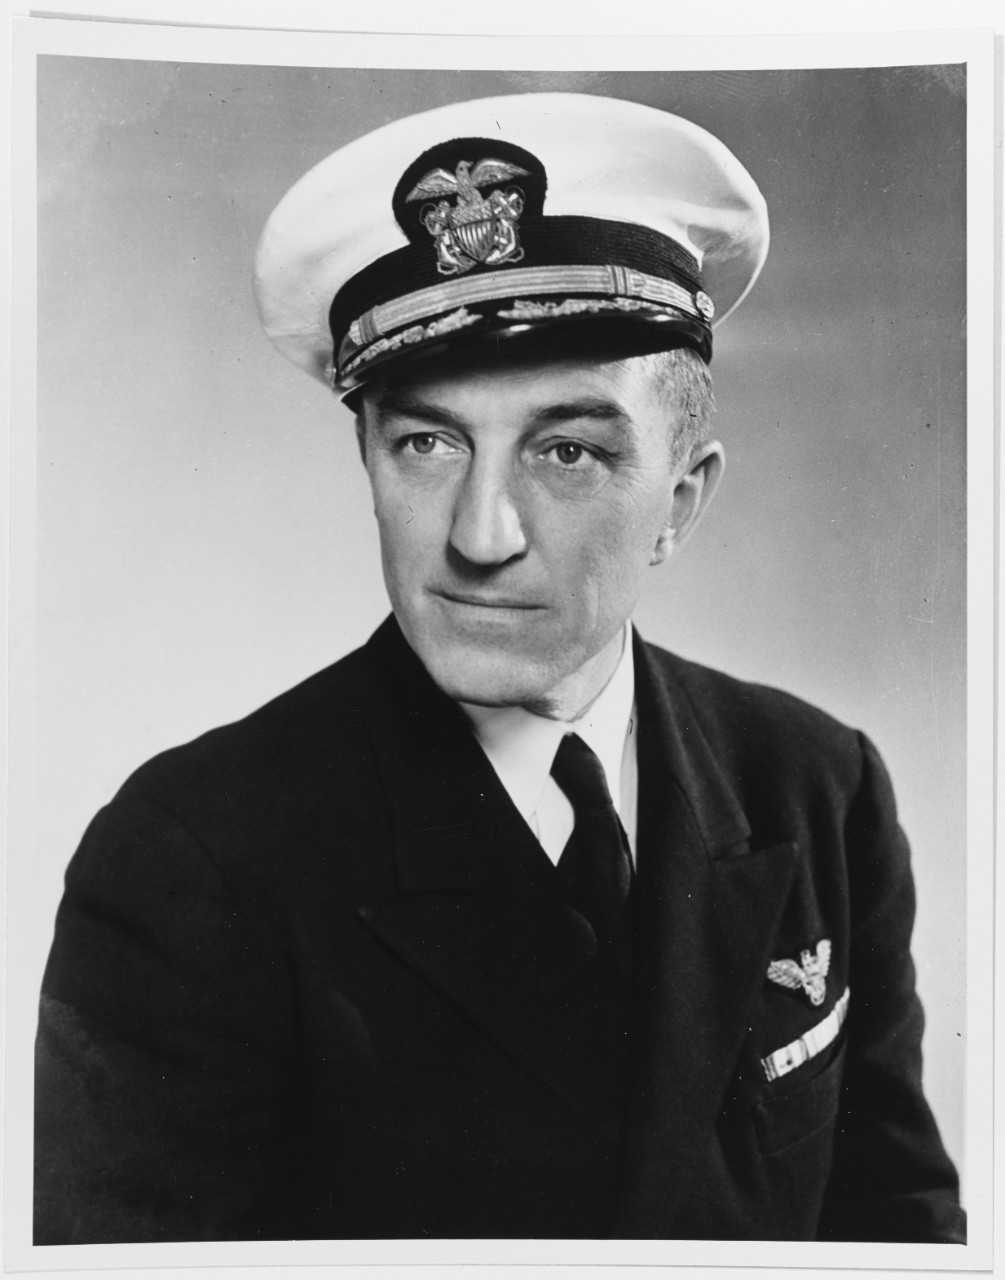 Admiral Thomas L. Sprague, US Navy. Photographic Section, Naval History and Heritage Command, #80-G-66889.